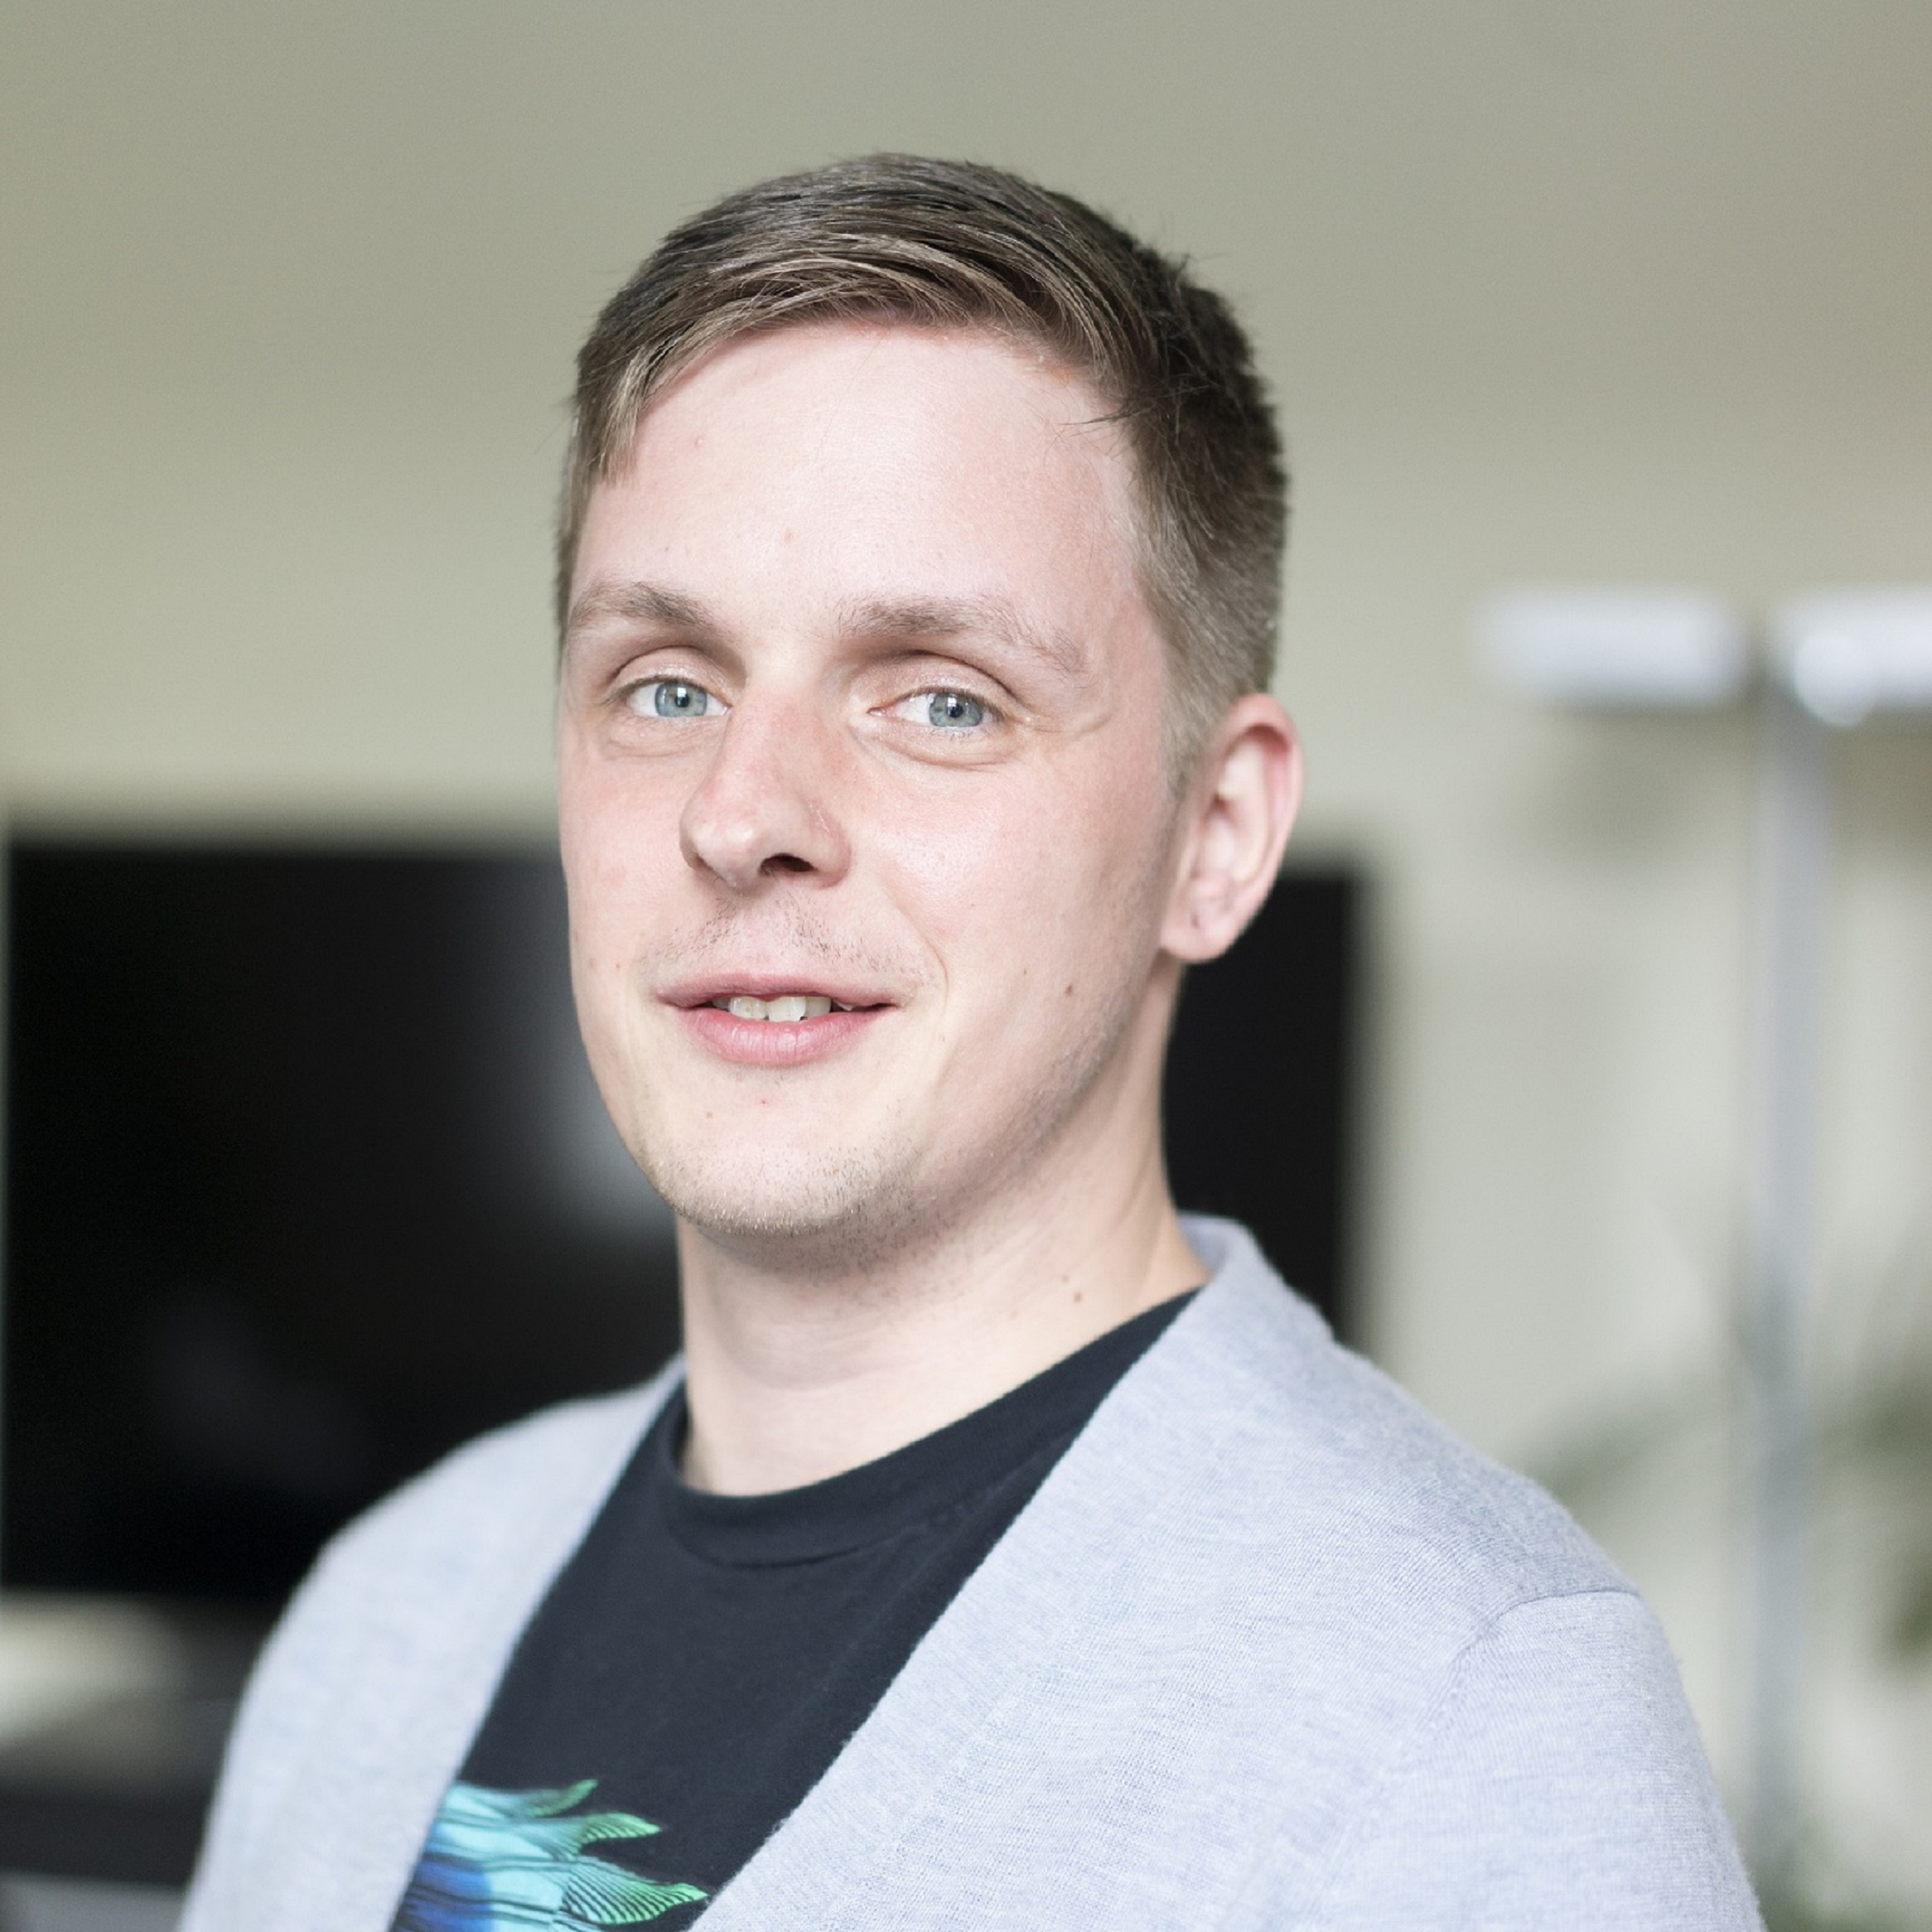 SHOPMACHER: Felix Gaksch ist neuer Chief Customer Officer